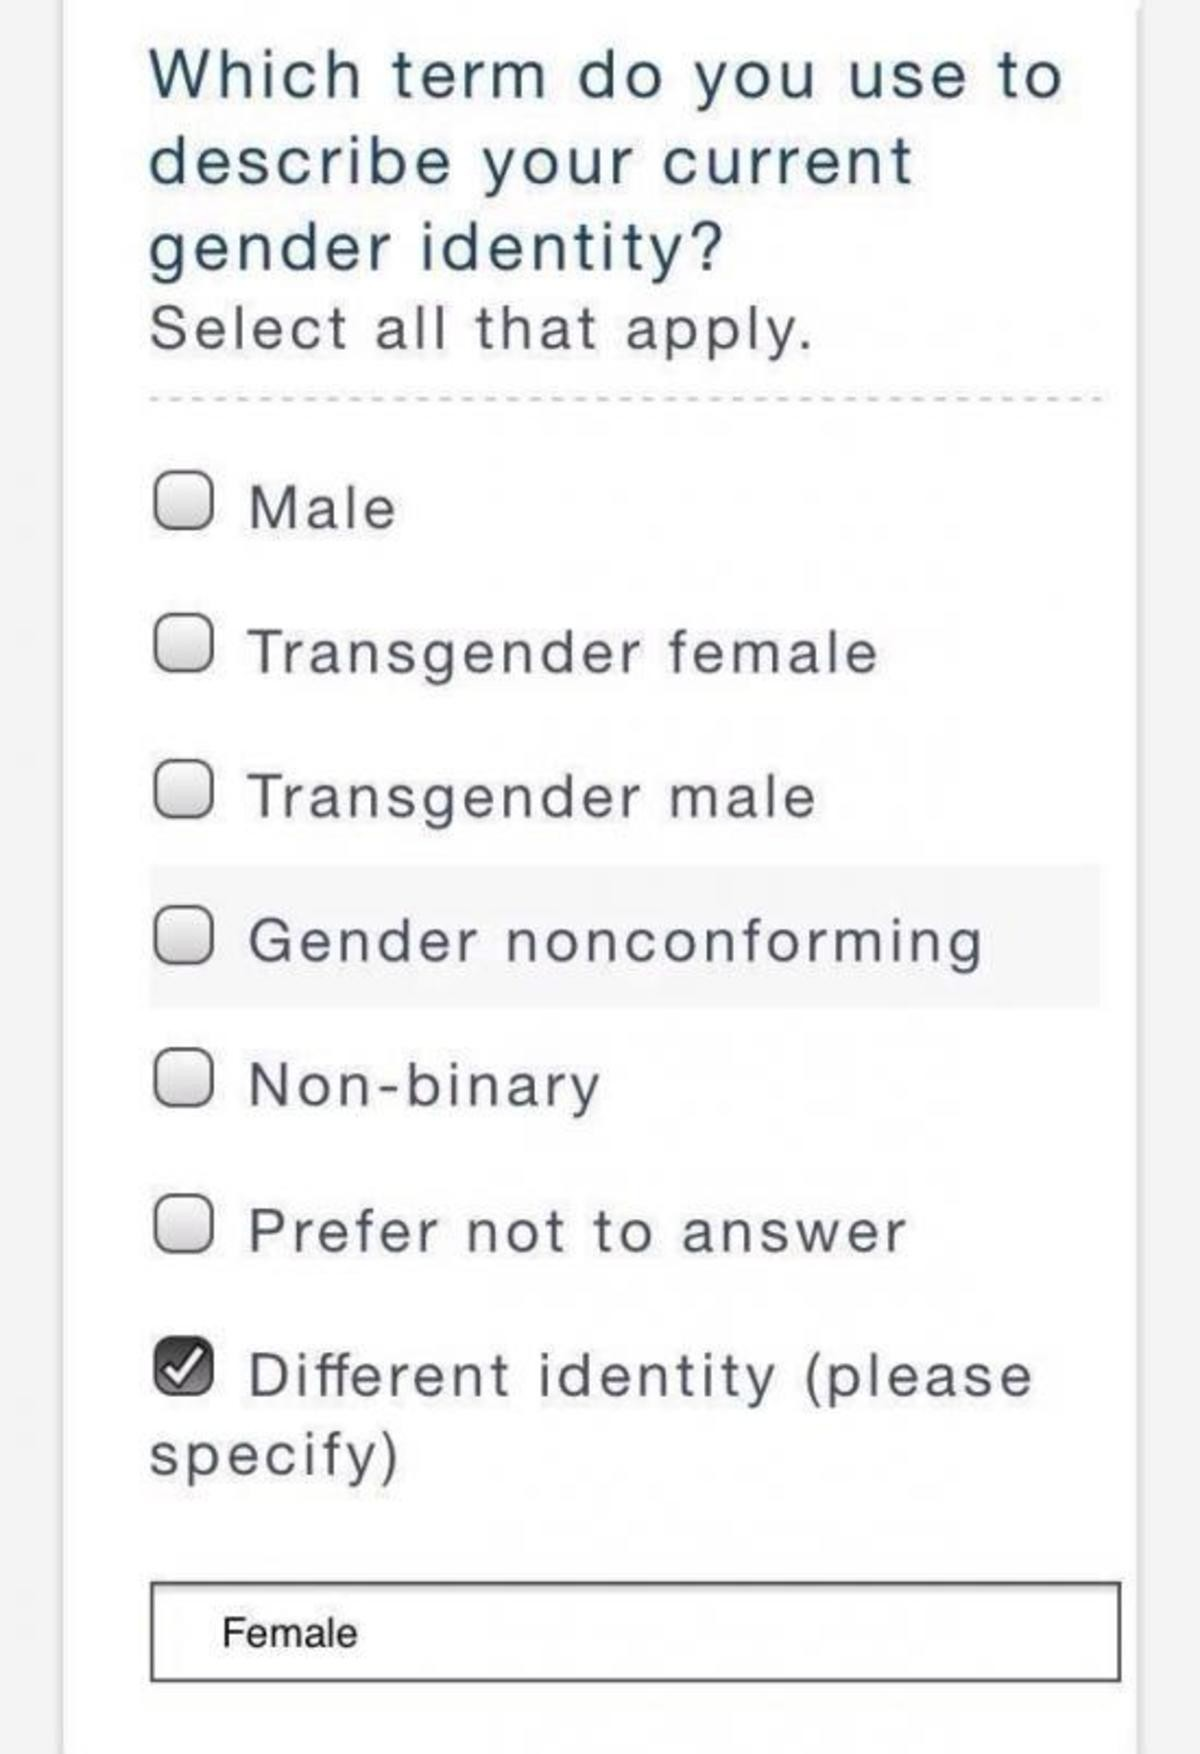 ummm. .. So inclusive as to leave out over 50% of the population